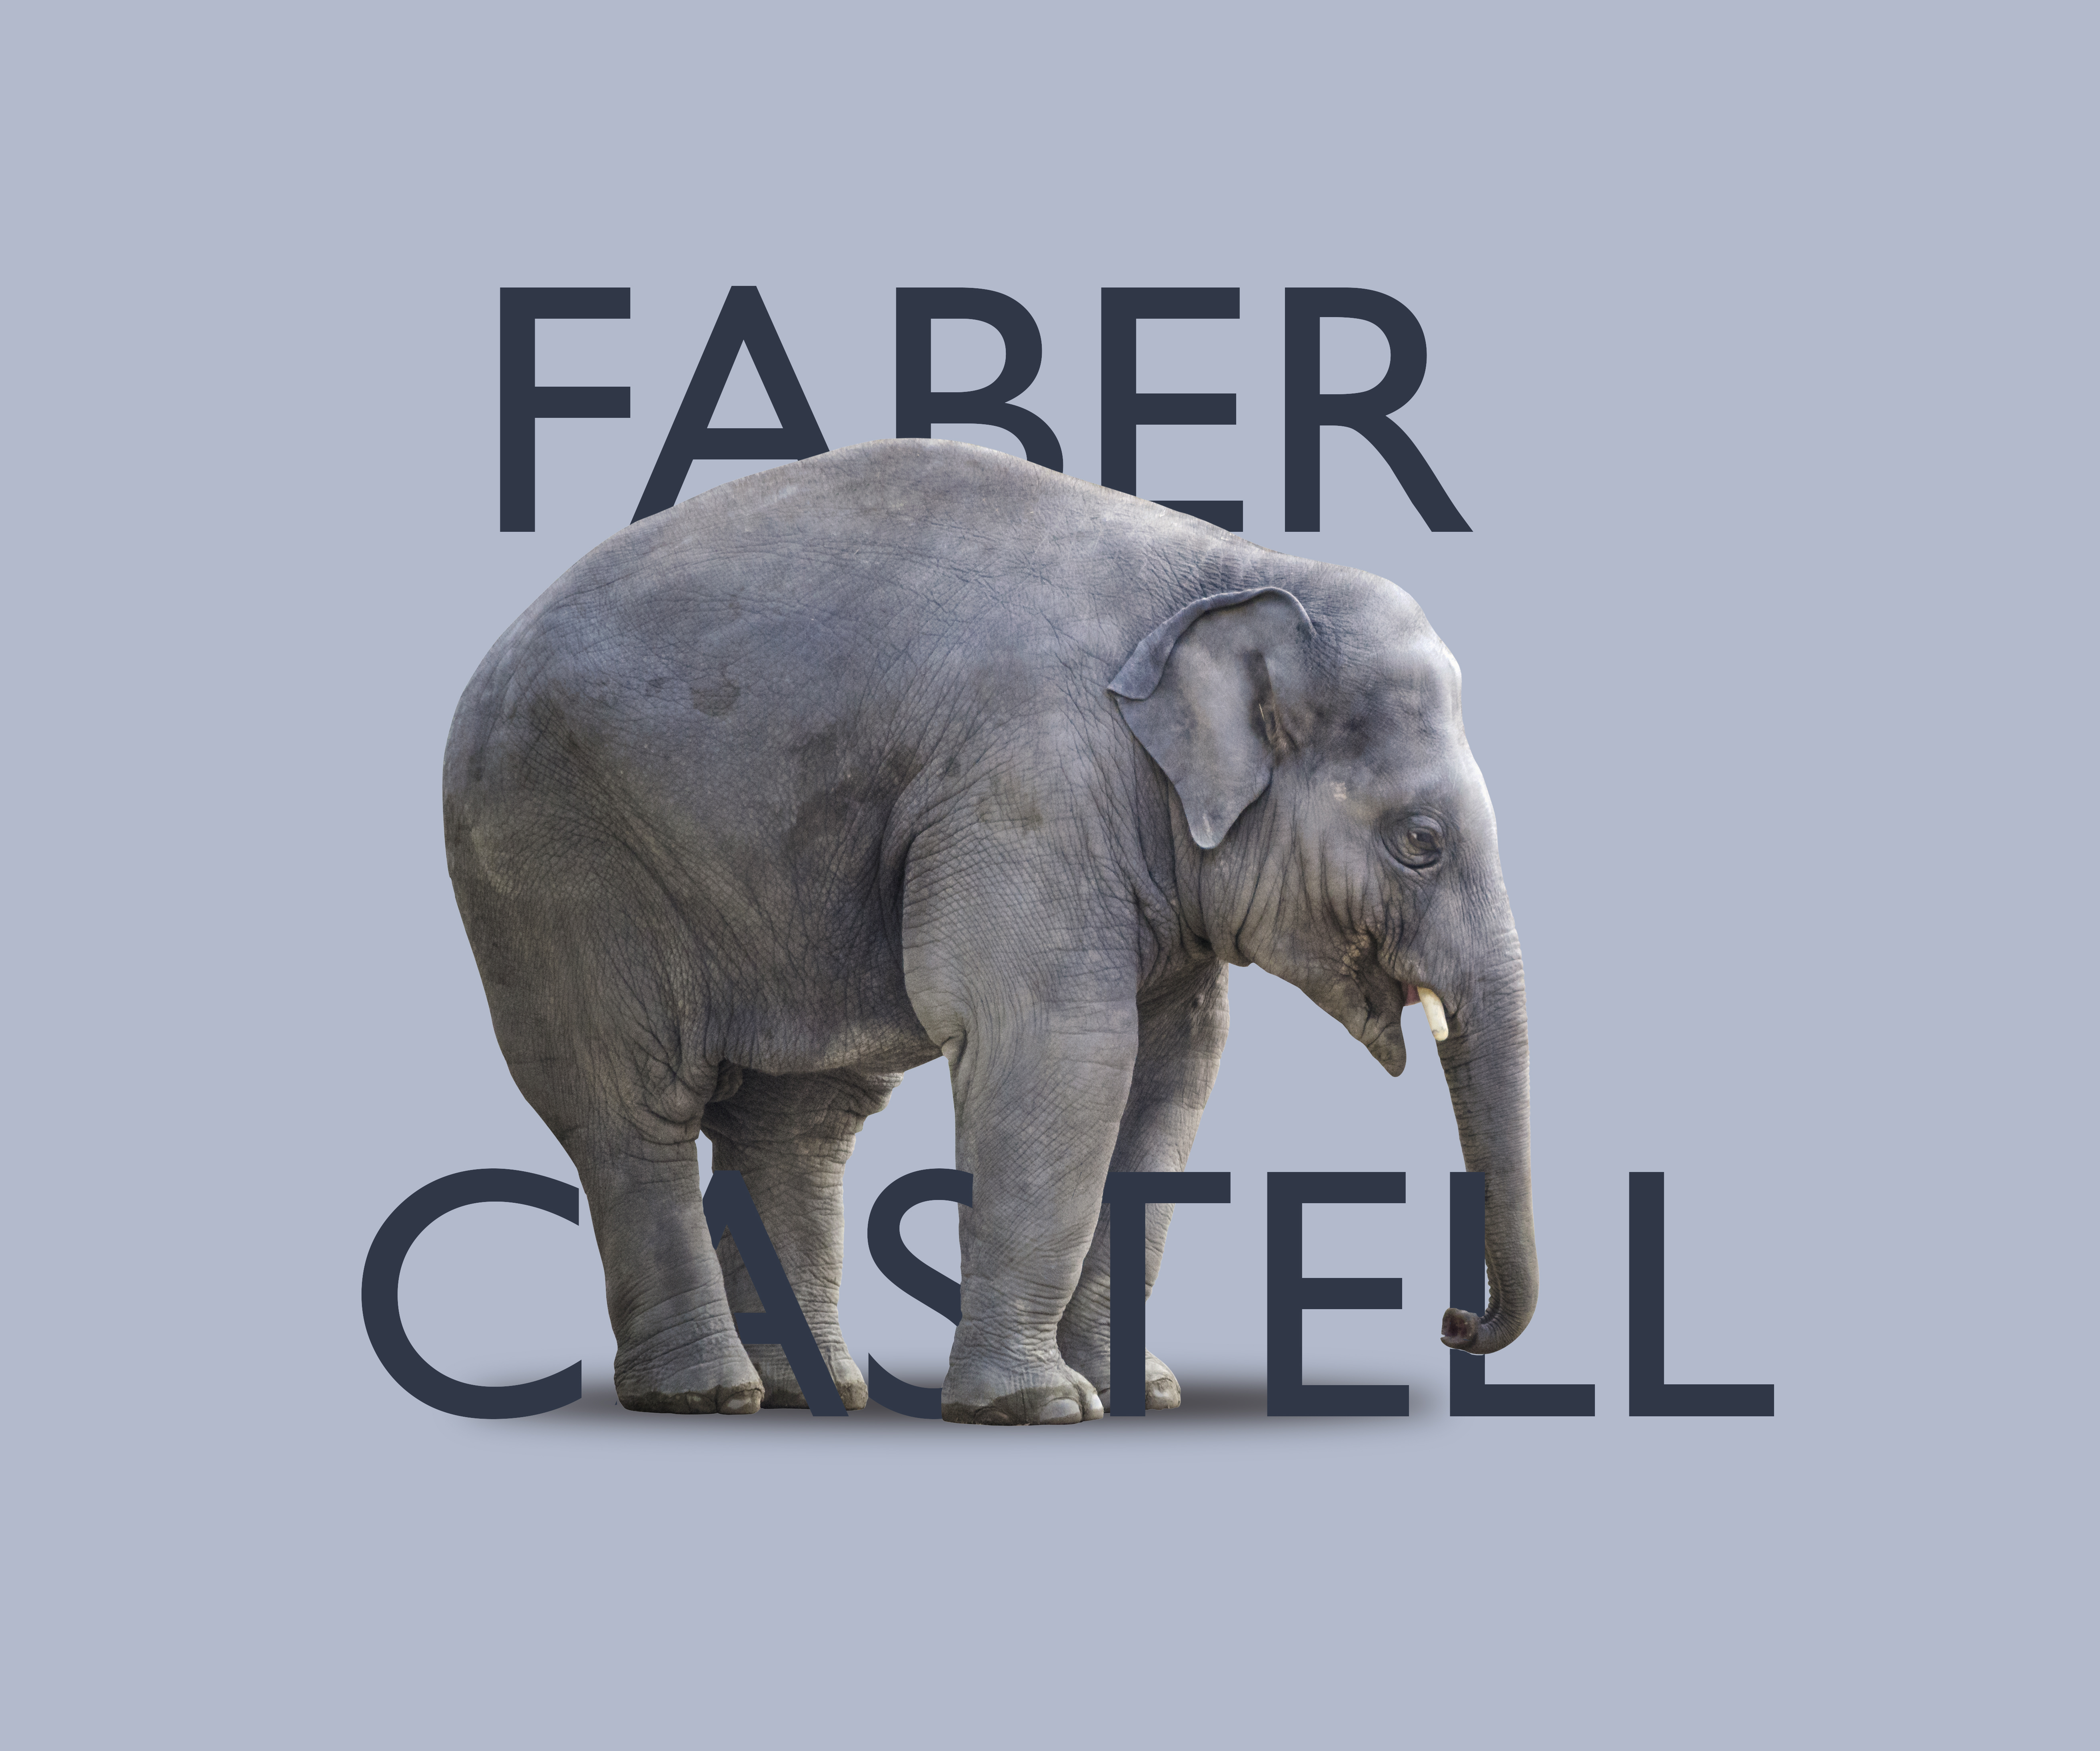 fabercastell2